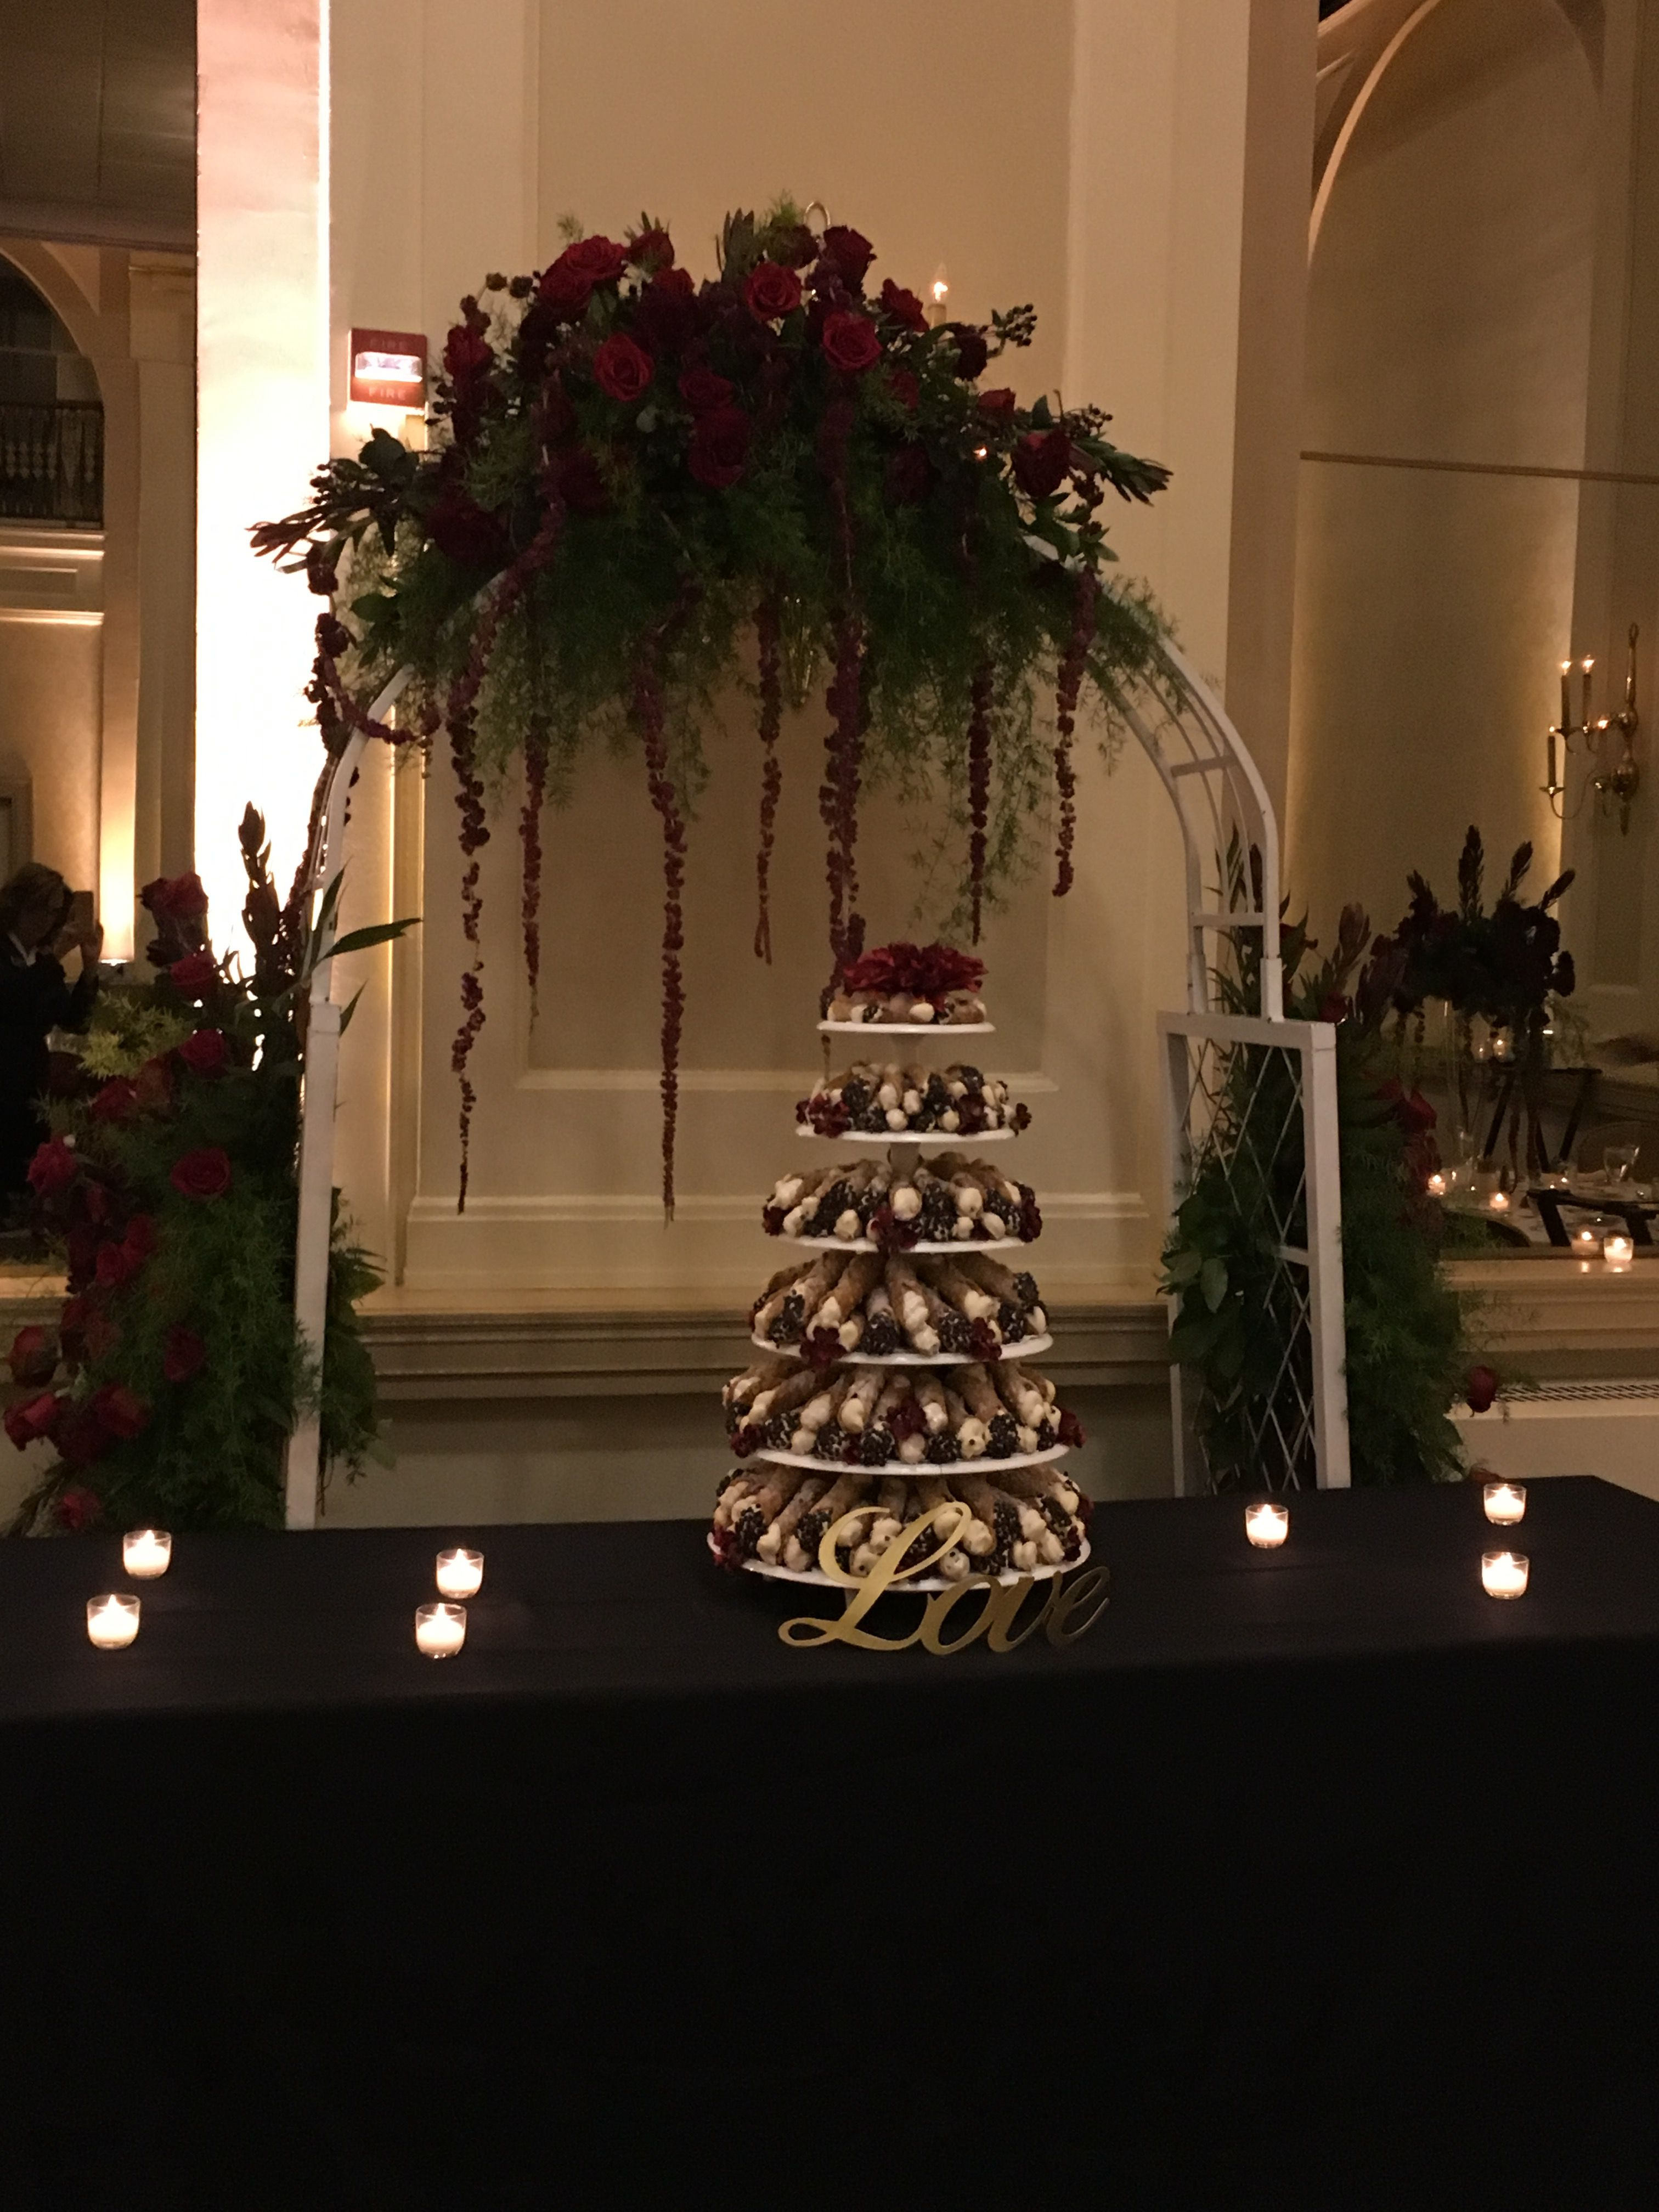 Cannoli Tower Decor Cake Mural Painting